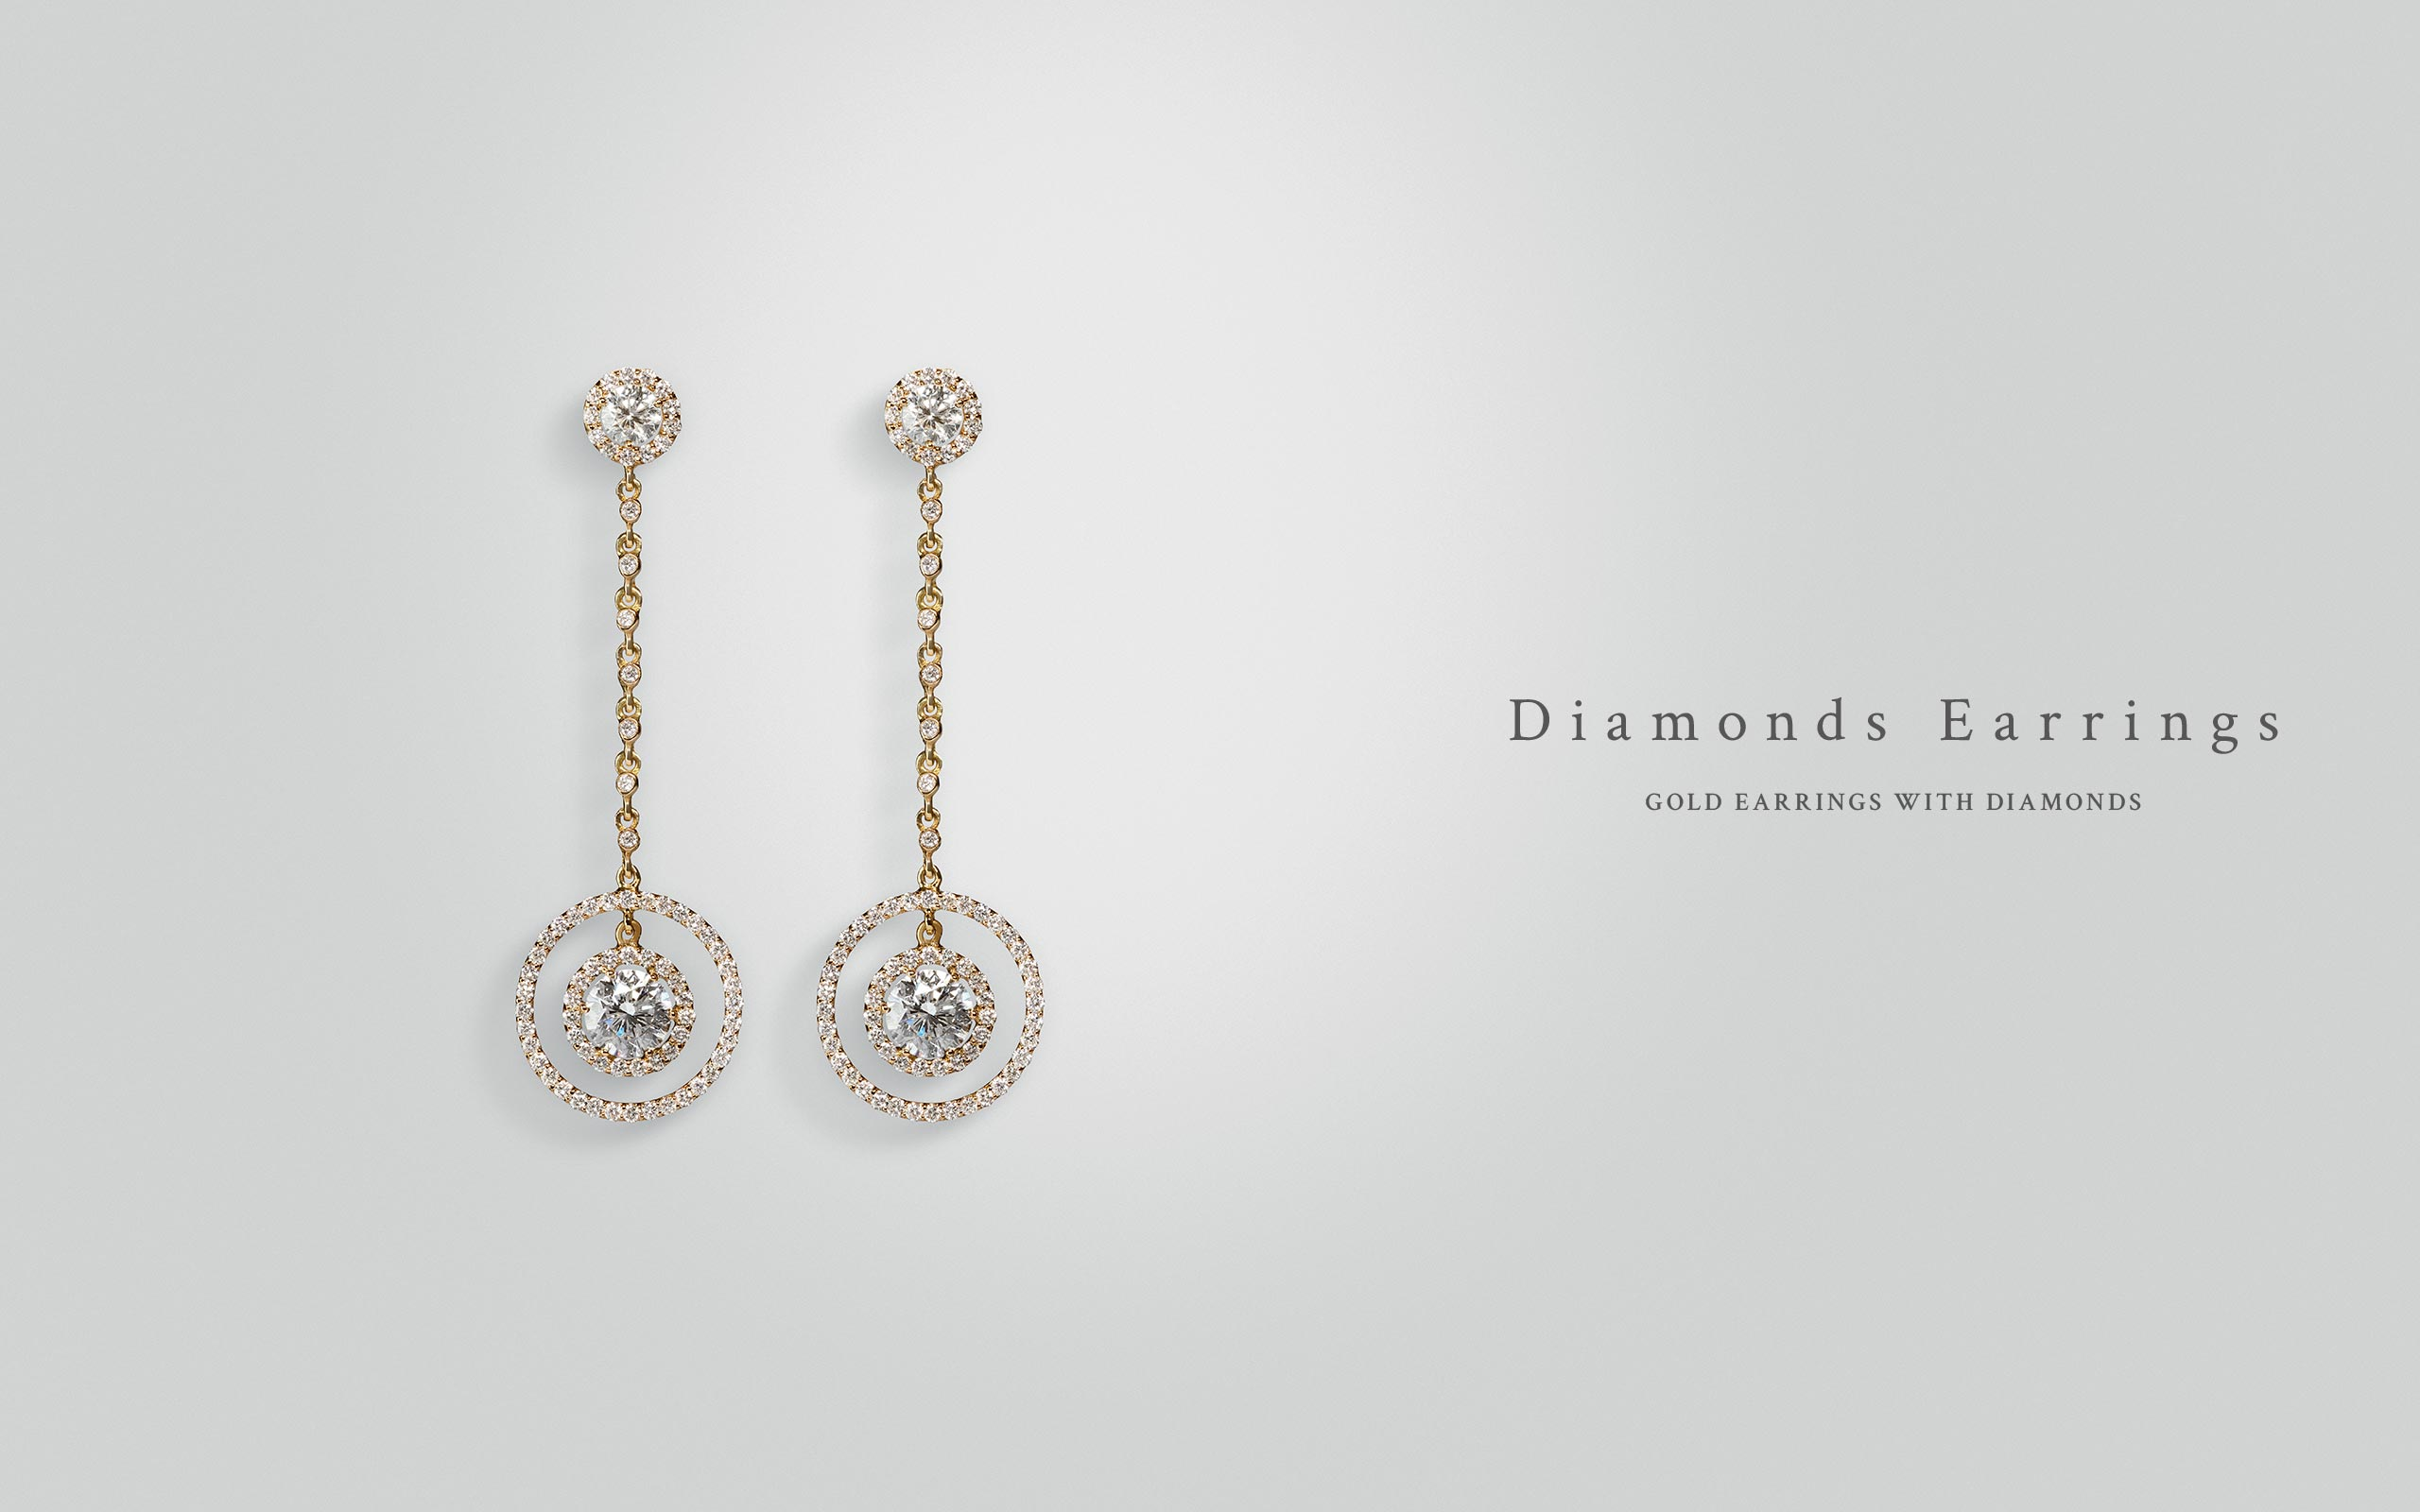 Diamonds Earrings 15 | Maria Gaspari